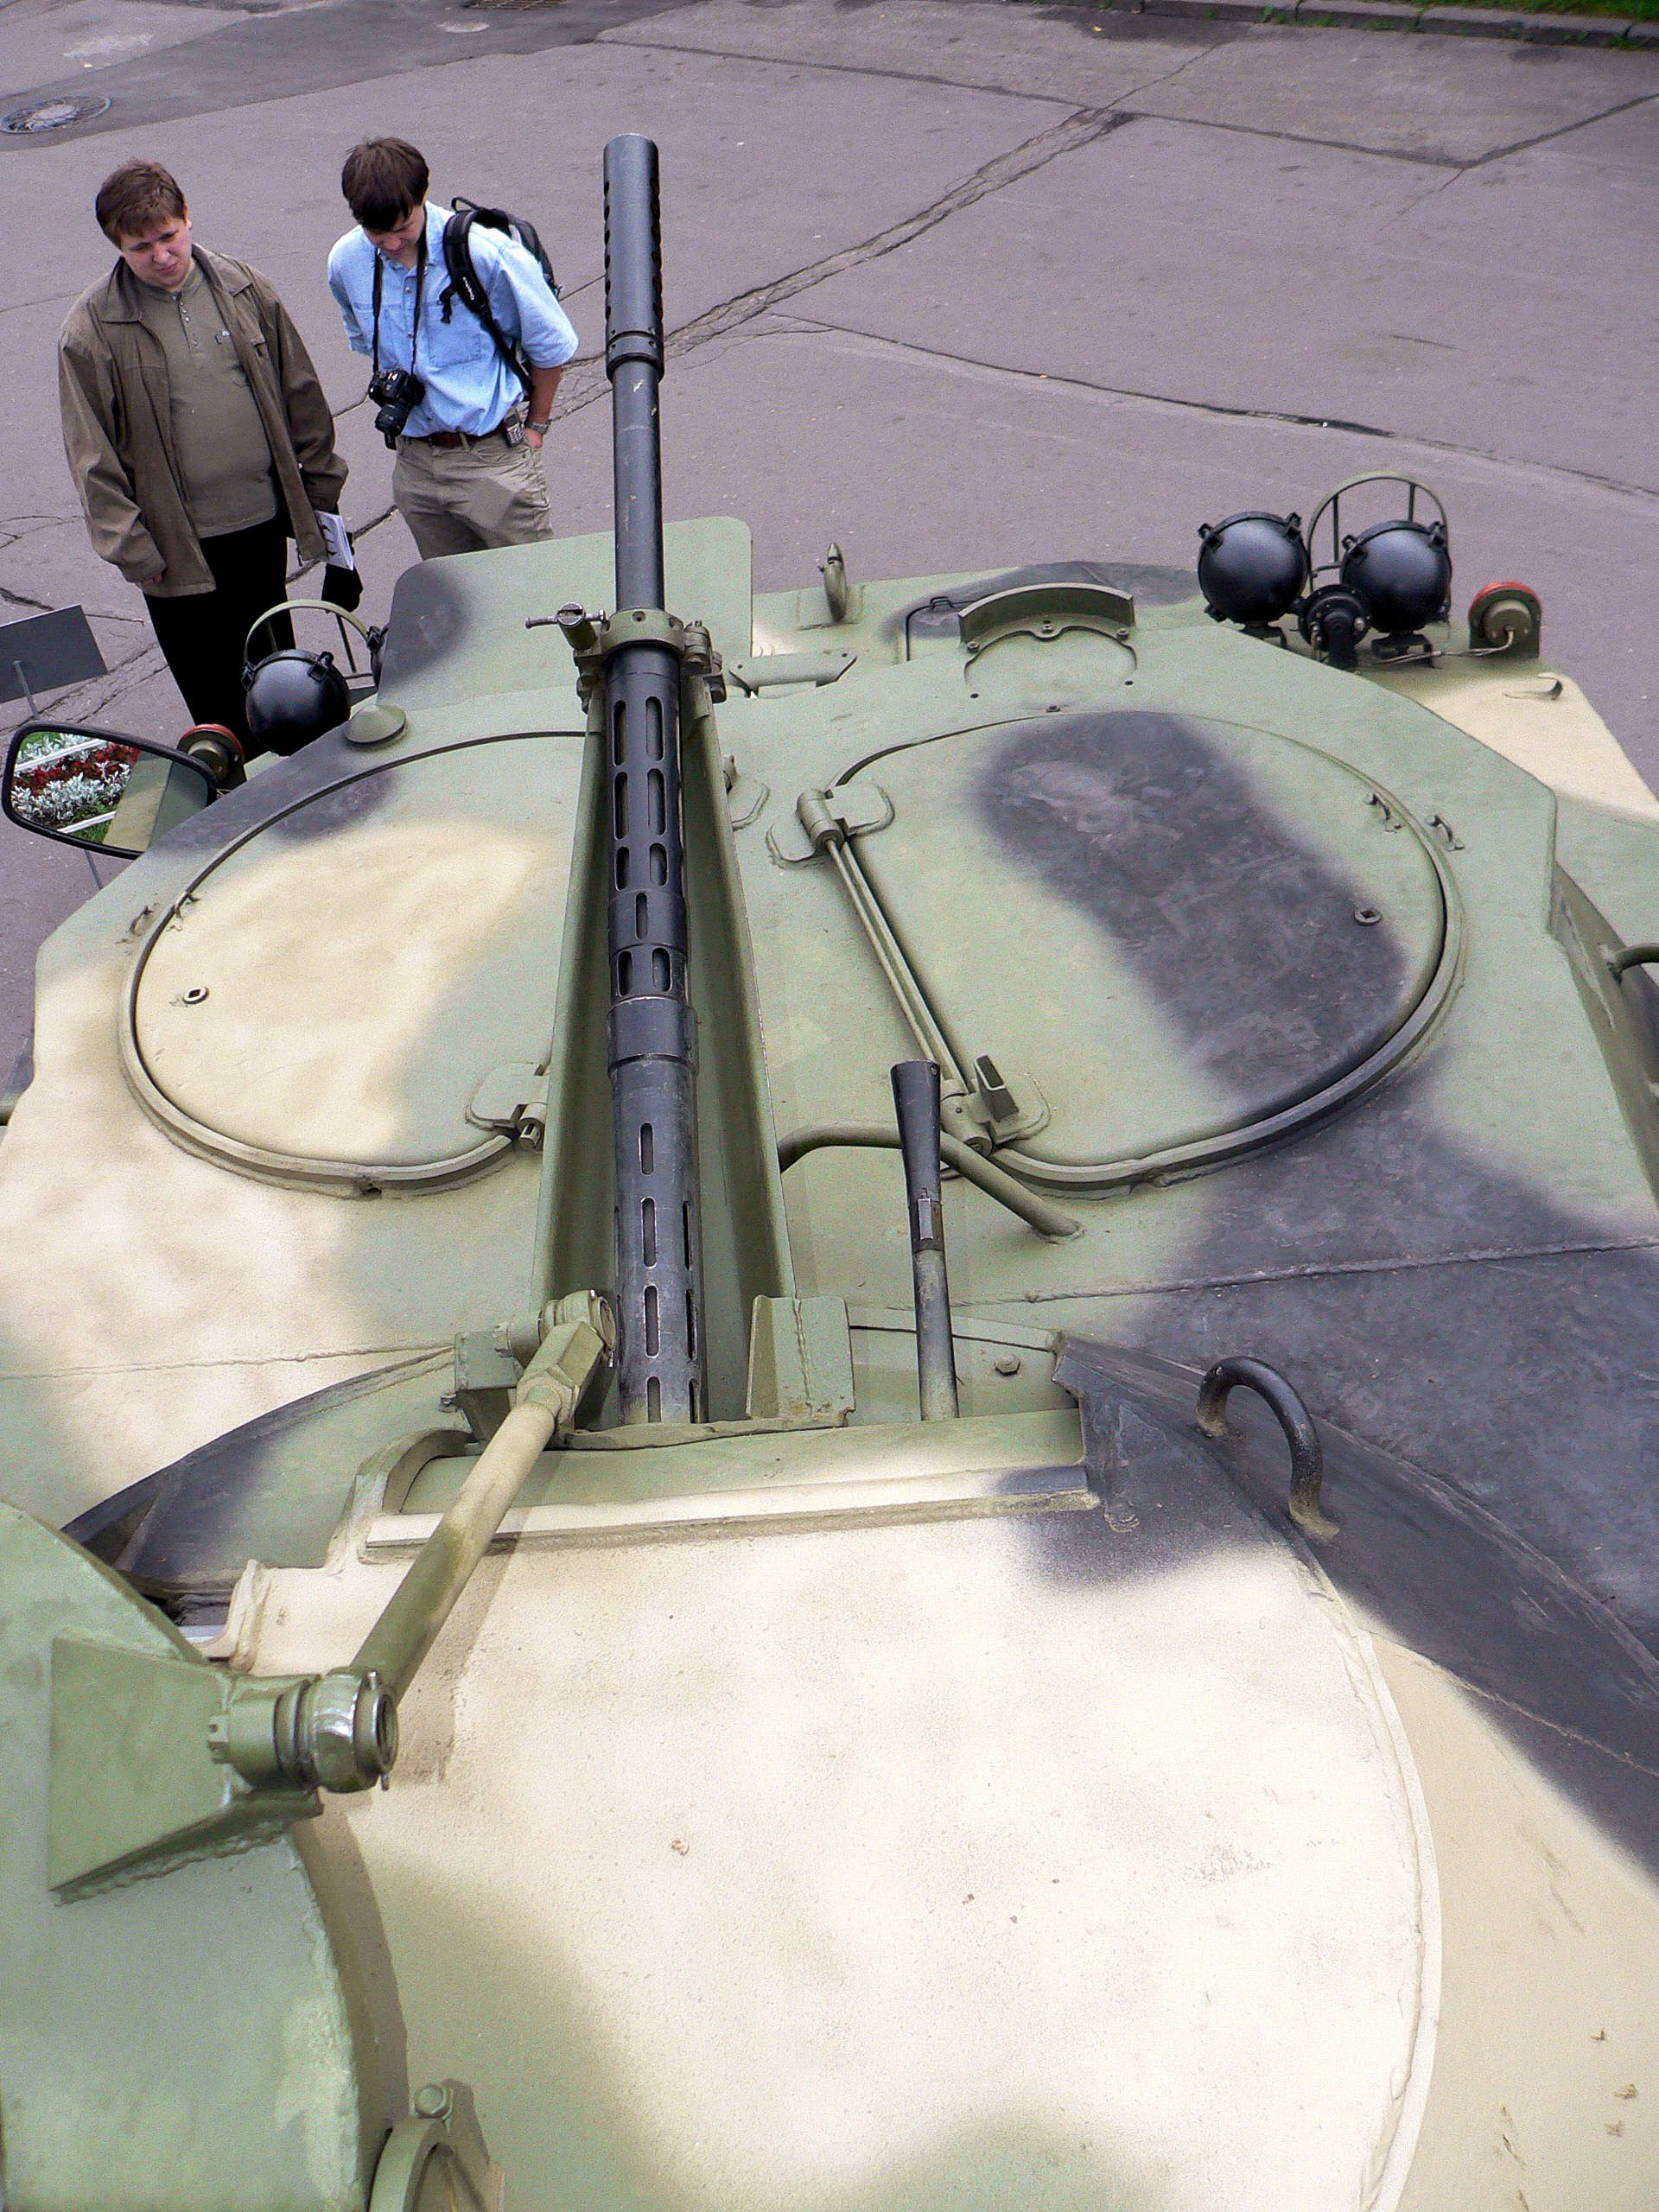 BMP-1 & BMP-2 in Russian Army - Page 5 Brdm-2_w_ags-17_076_of_100